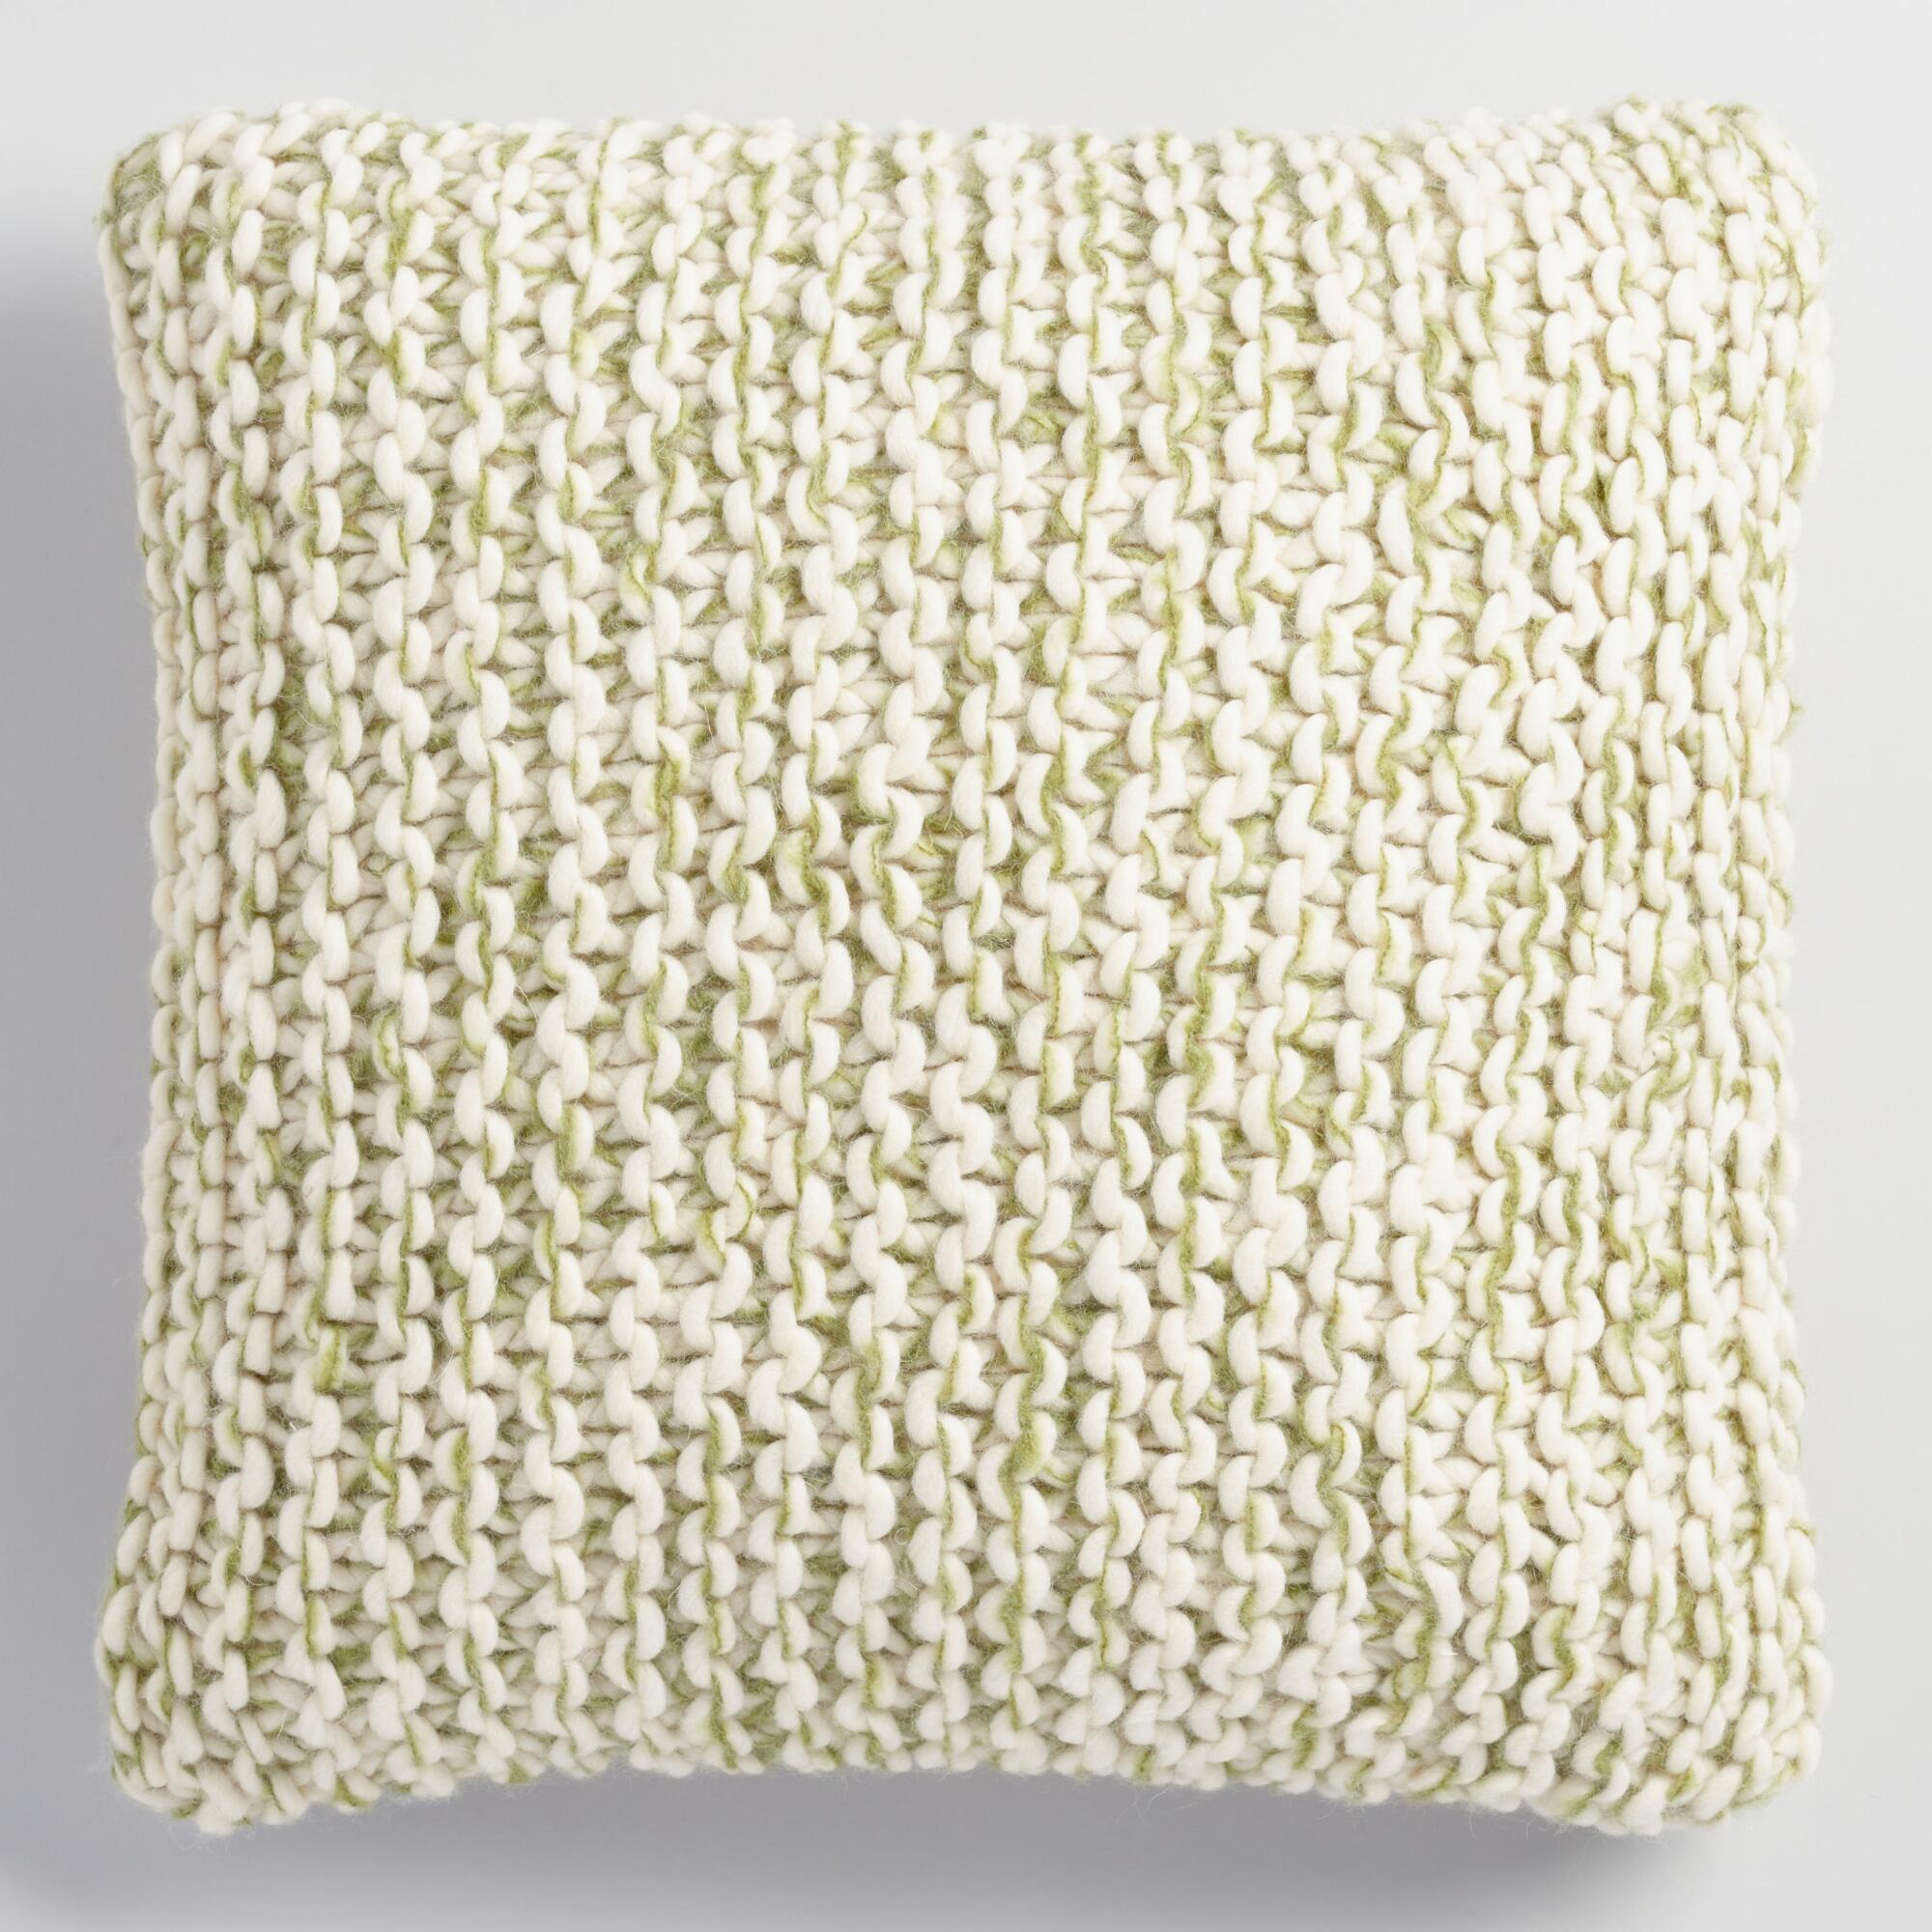 Knitting Patterns For Throw Pillows : Green and Ivory Chunky Knit Throw Pillow World Market